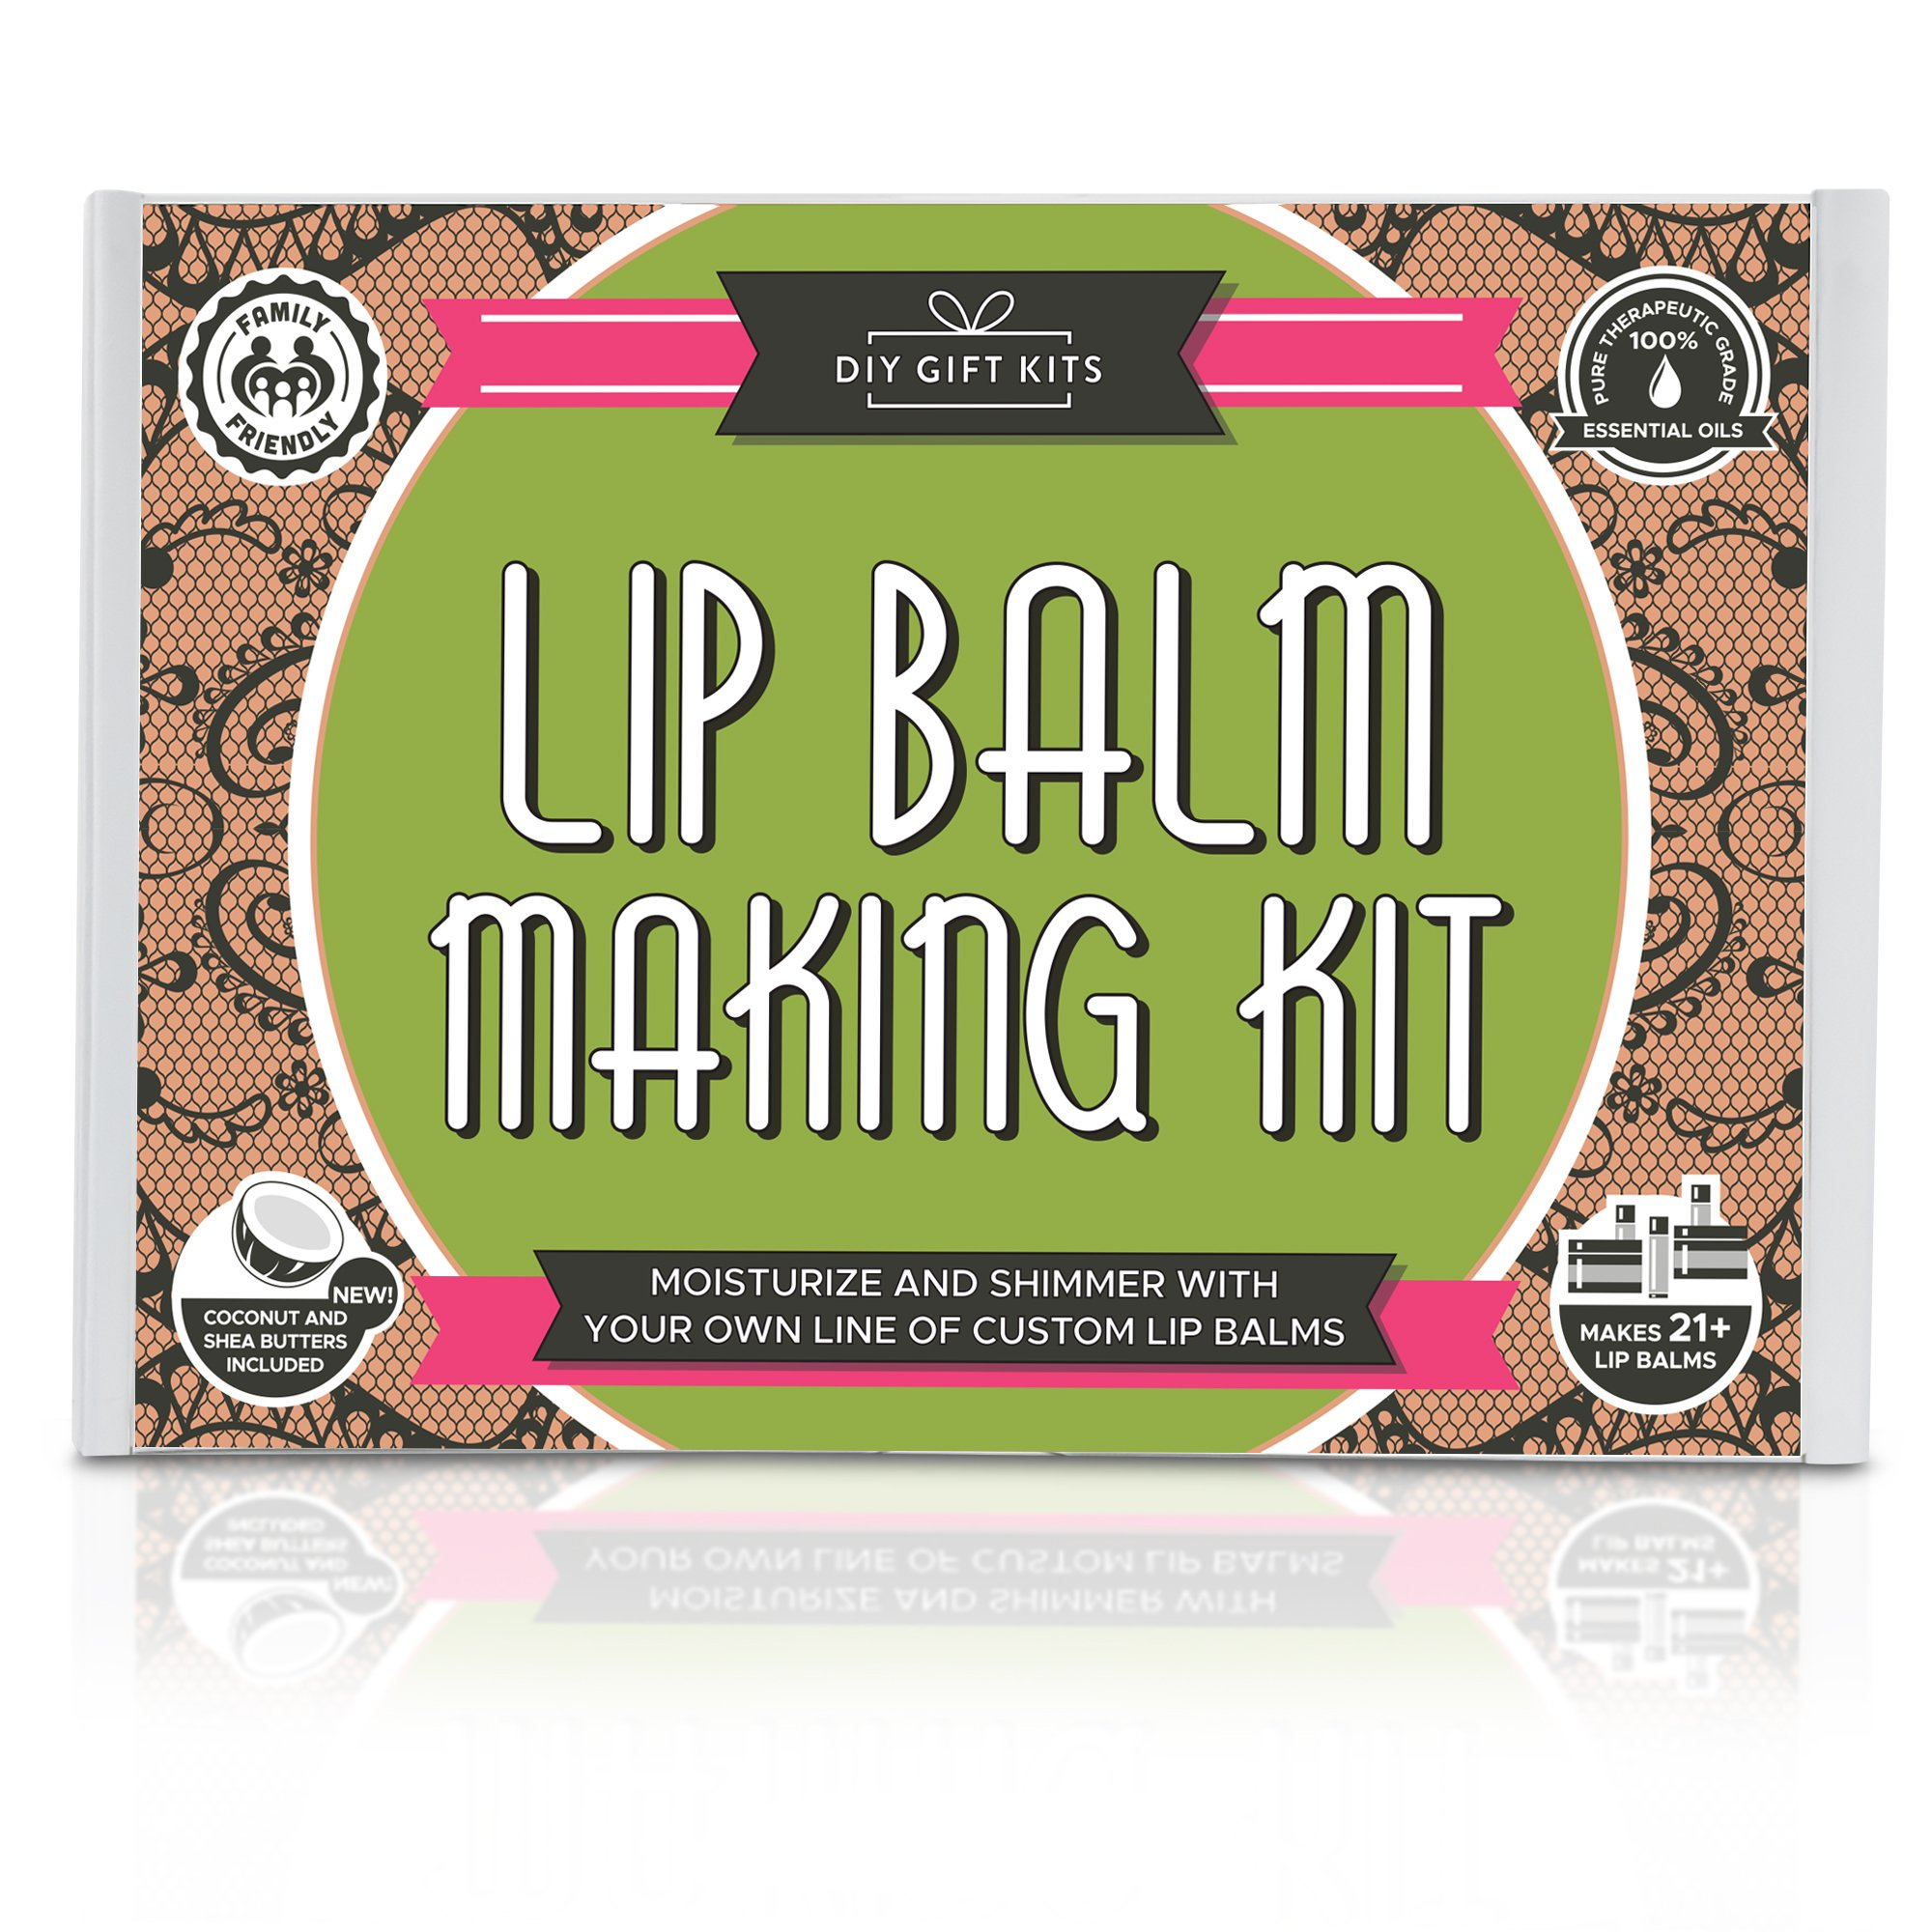 DIY Lip Balm Kit, (73-Piece Set) Homemade, Natural and Organic   Includes Tubes, Beeswax Pouch, Essential Oils, Labels, Stir Sticks & More